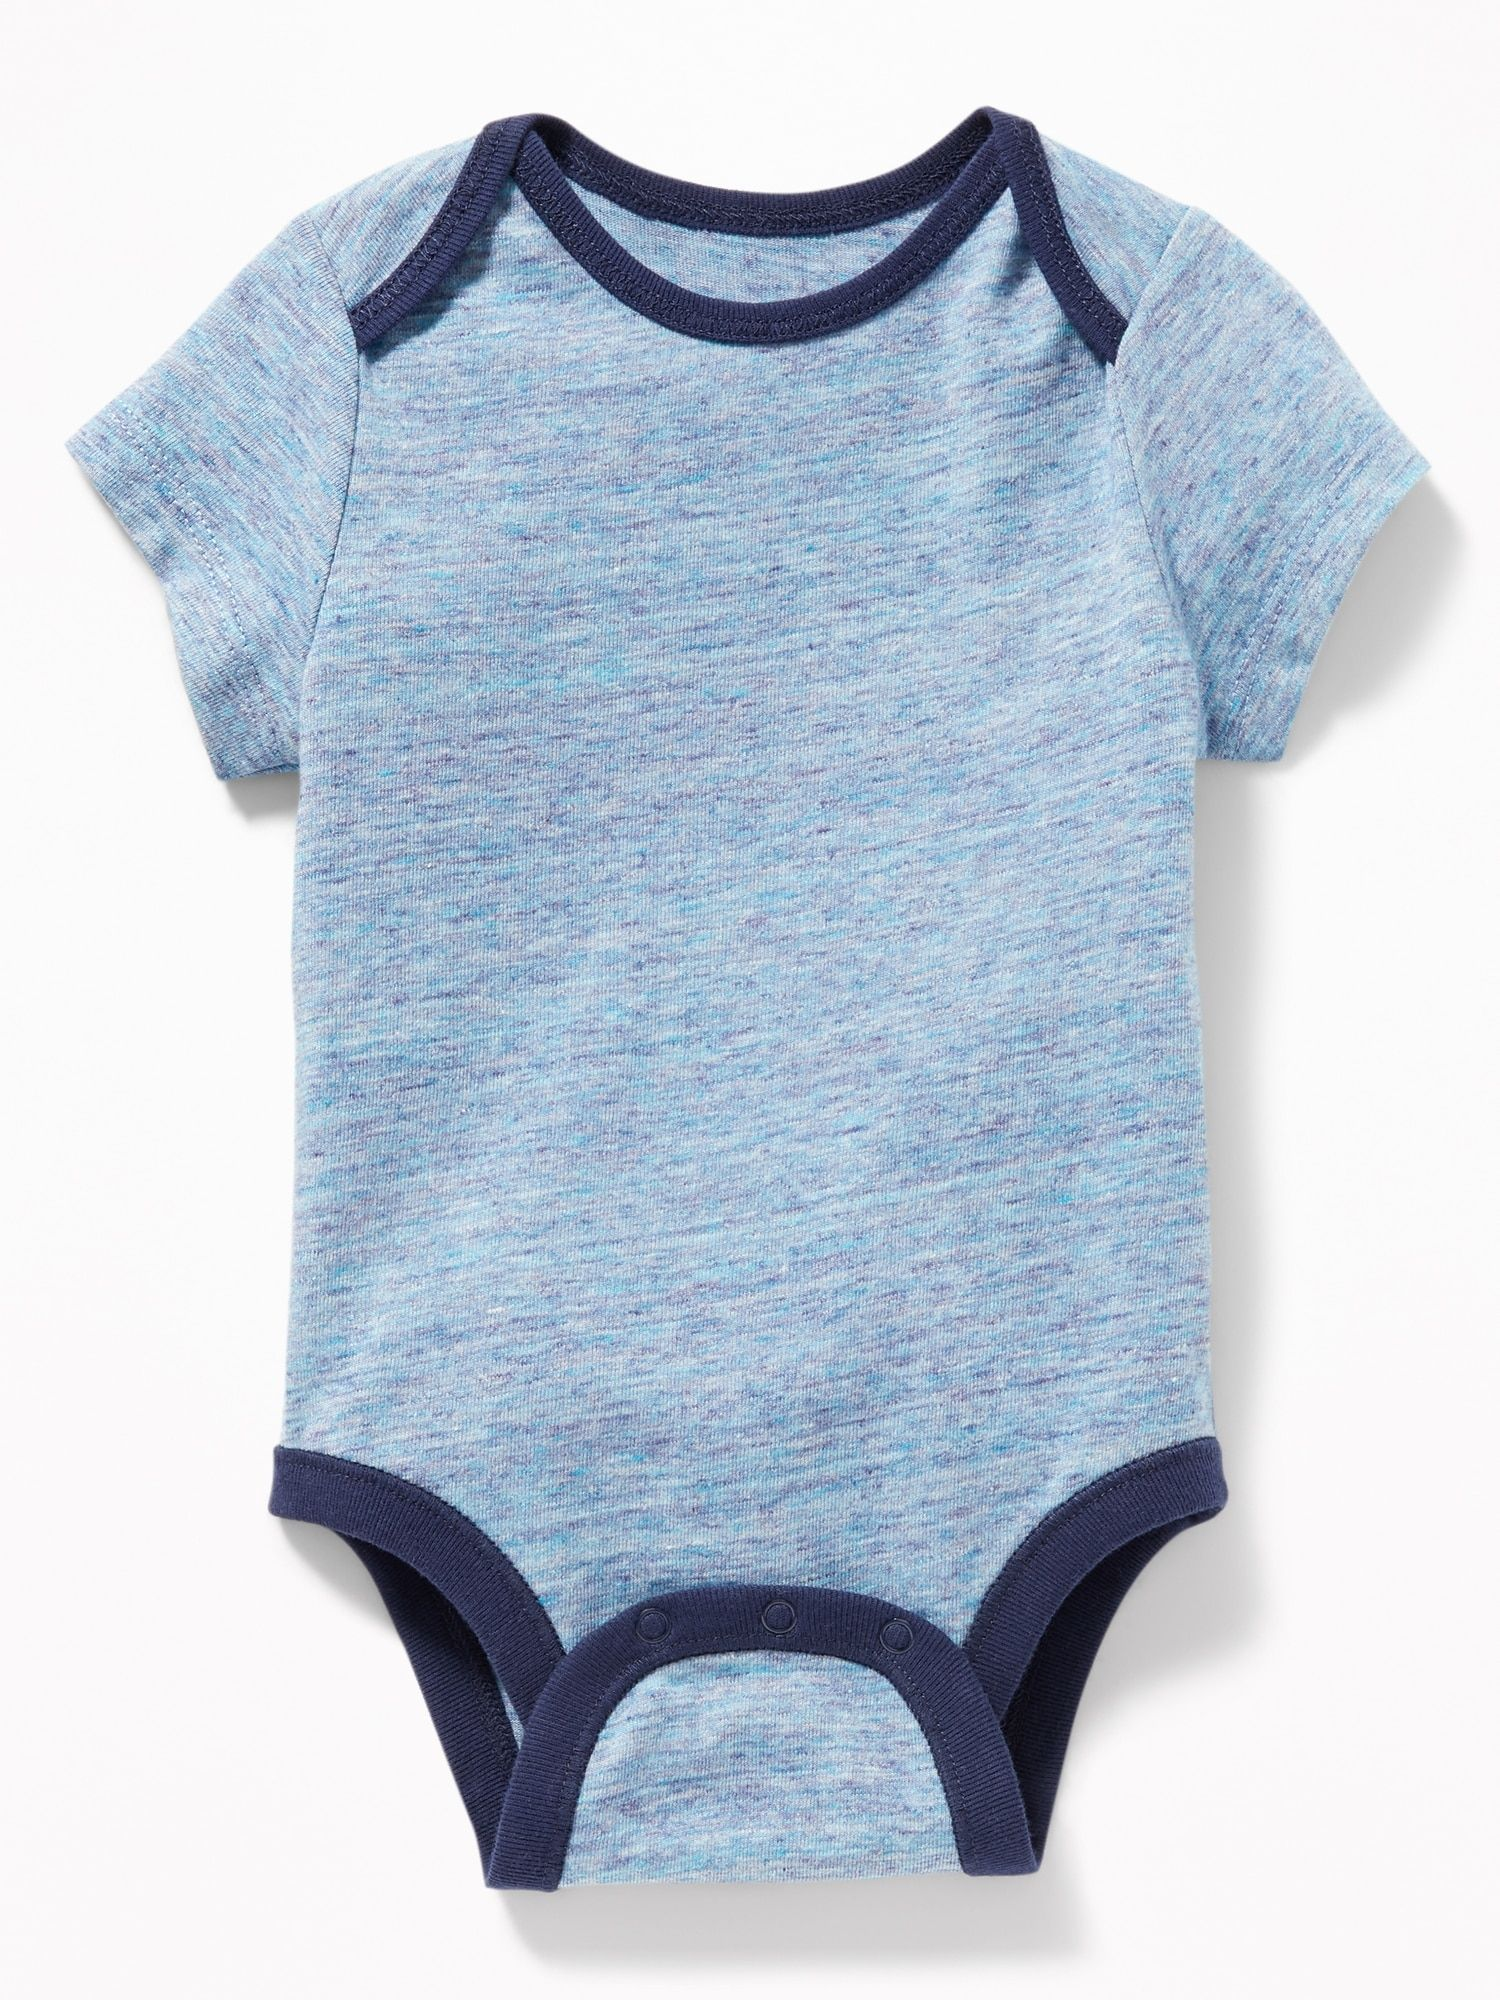 904aad5cb Heathered Bodysuit for Baby